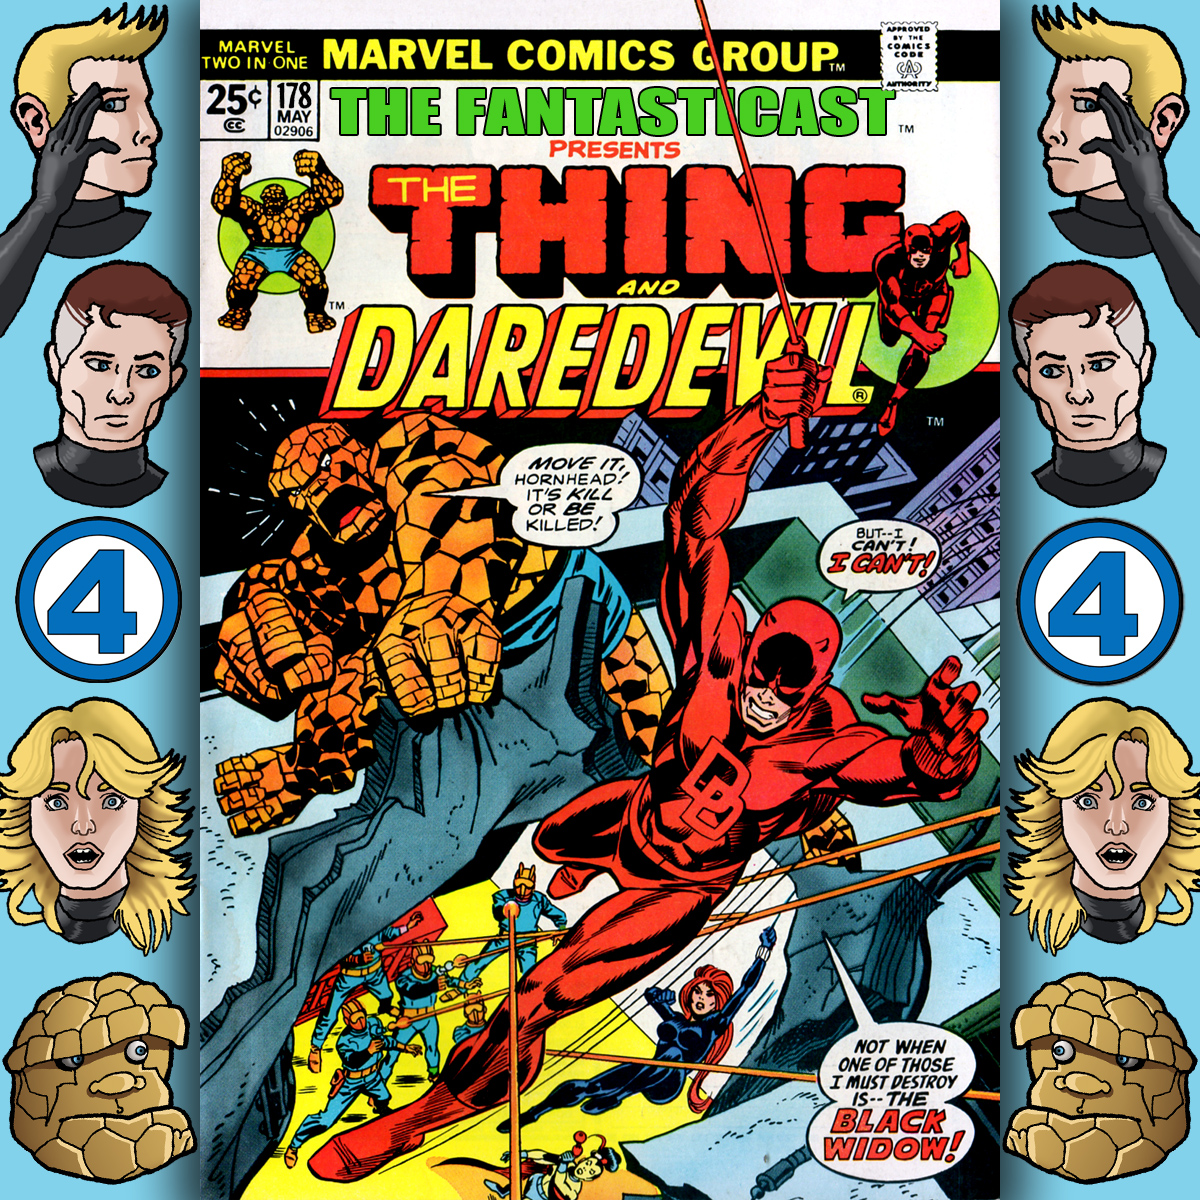 The Fantasticast Episode 178